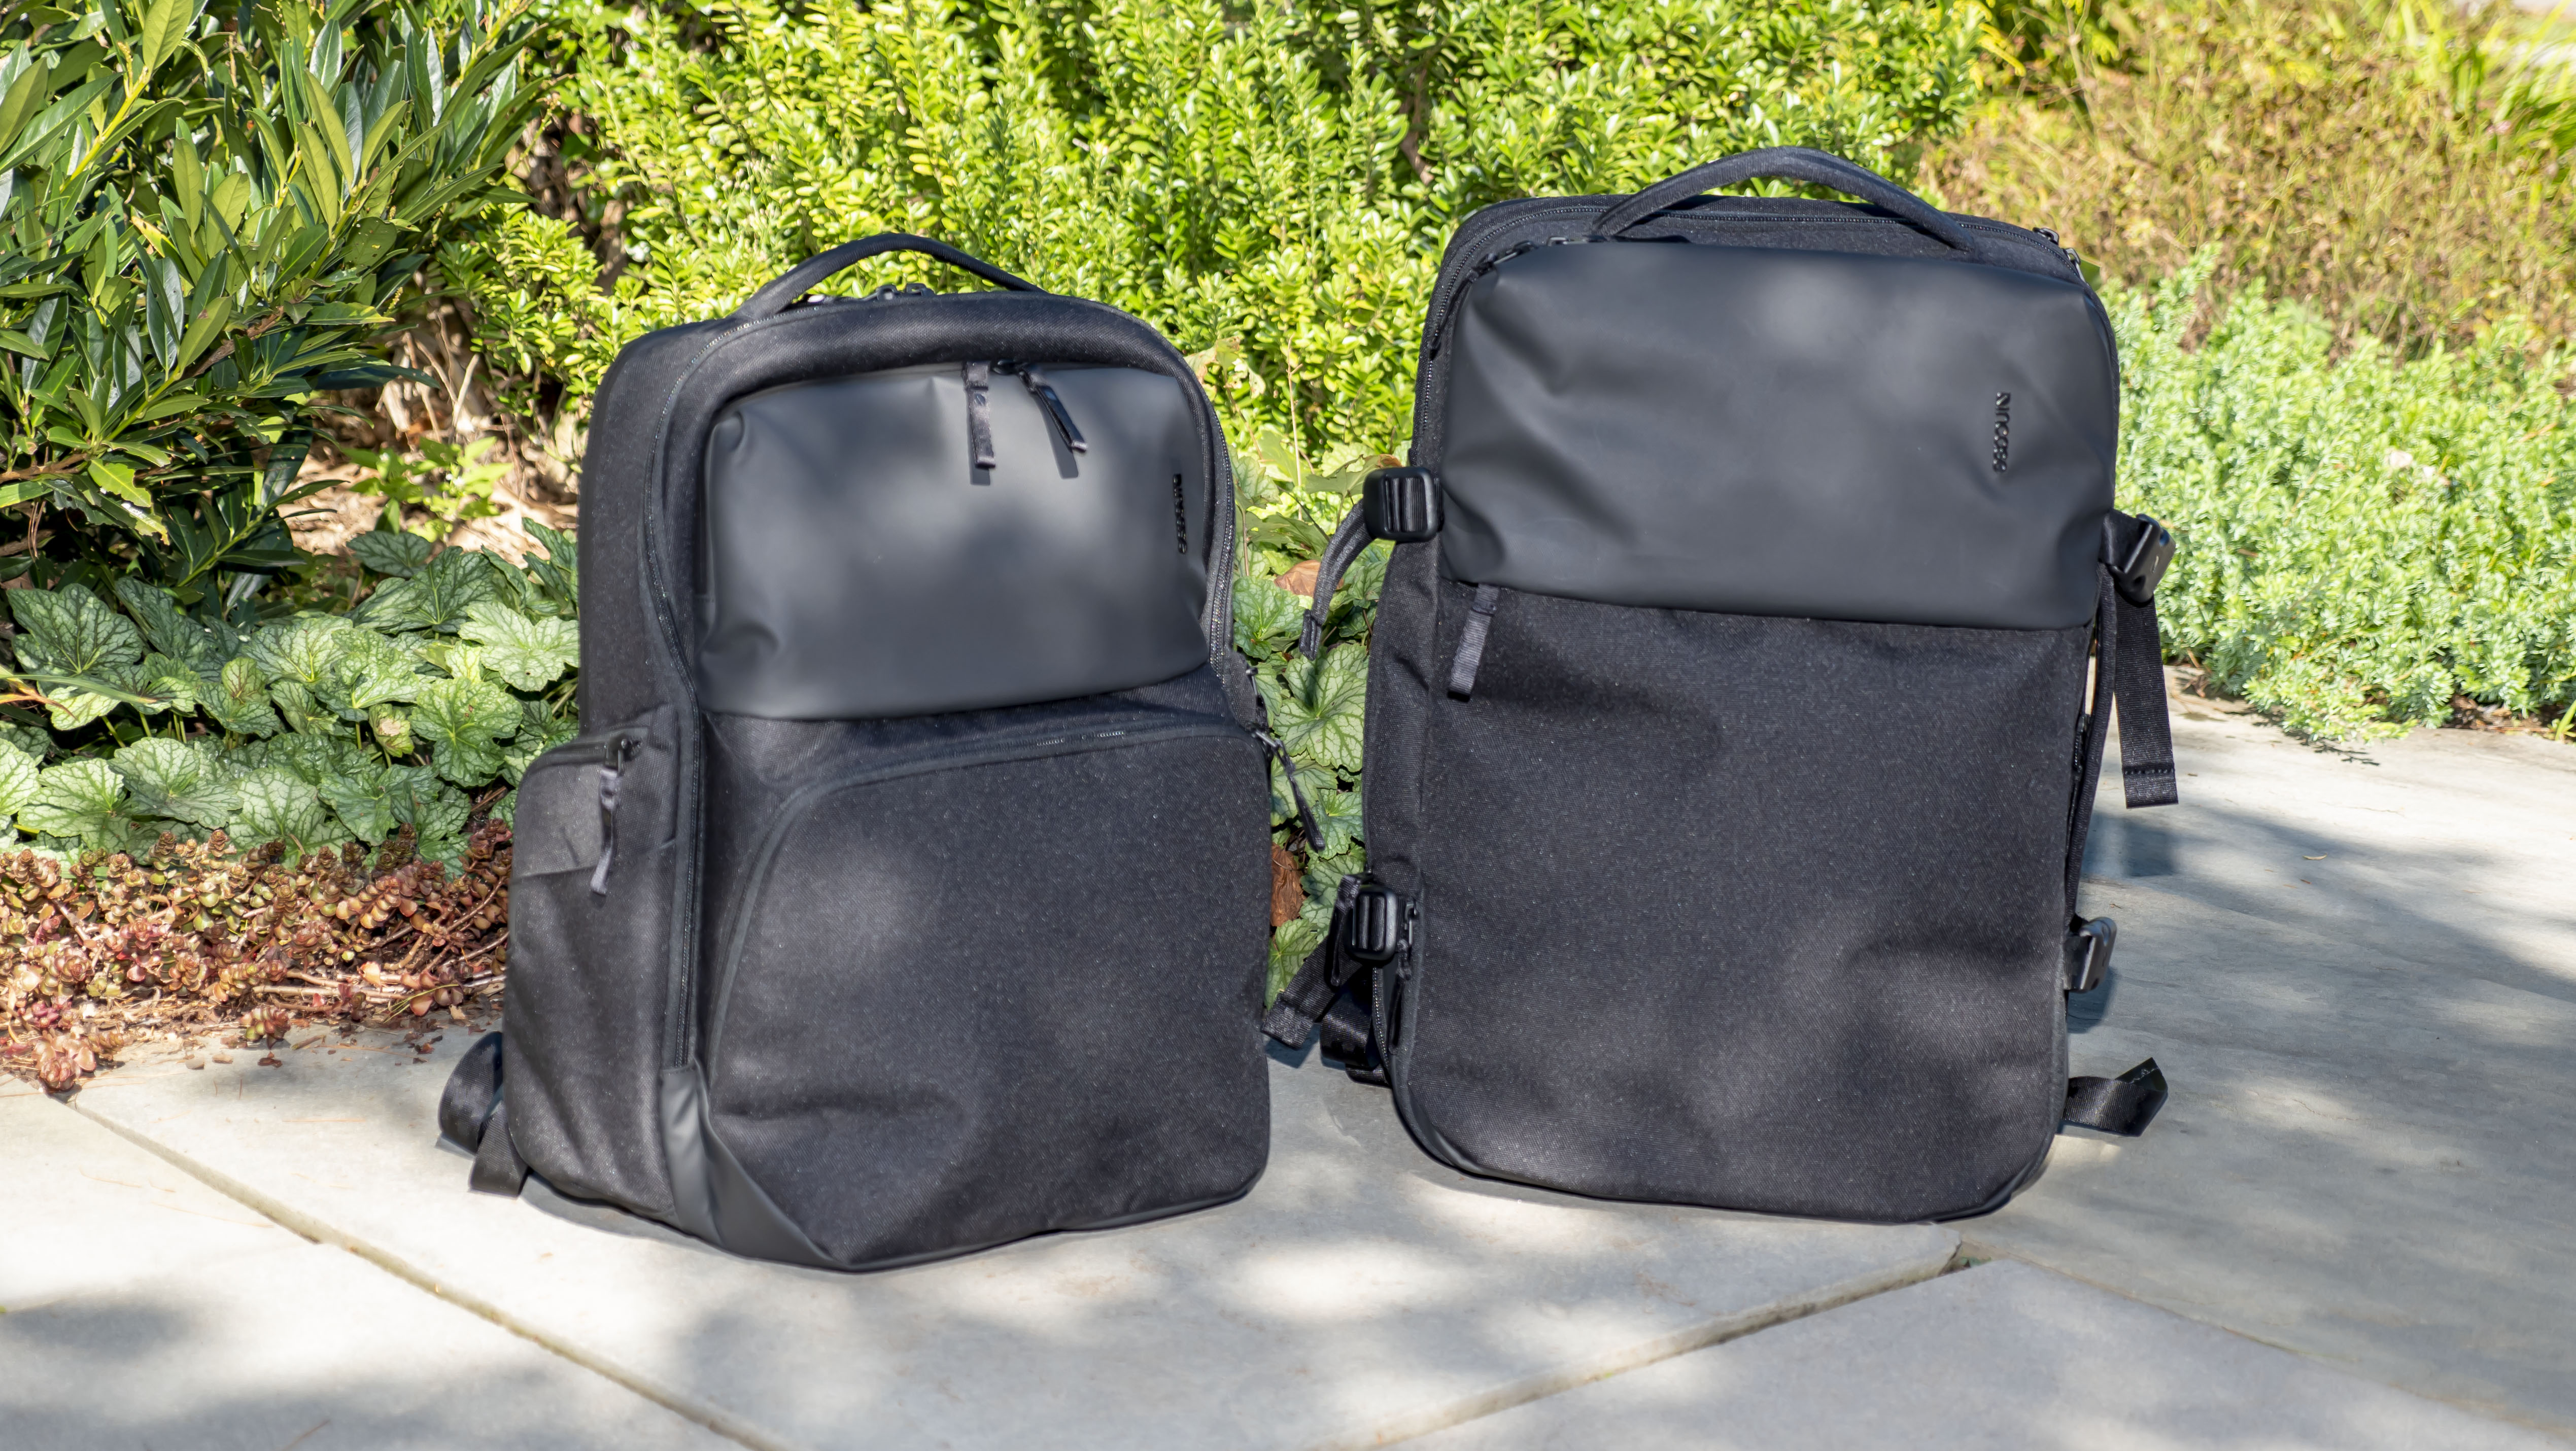 incase-arc-travel-pack-and-commuter-pack-01